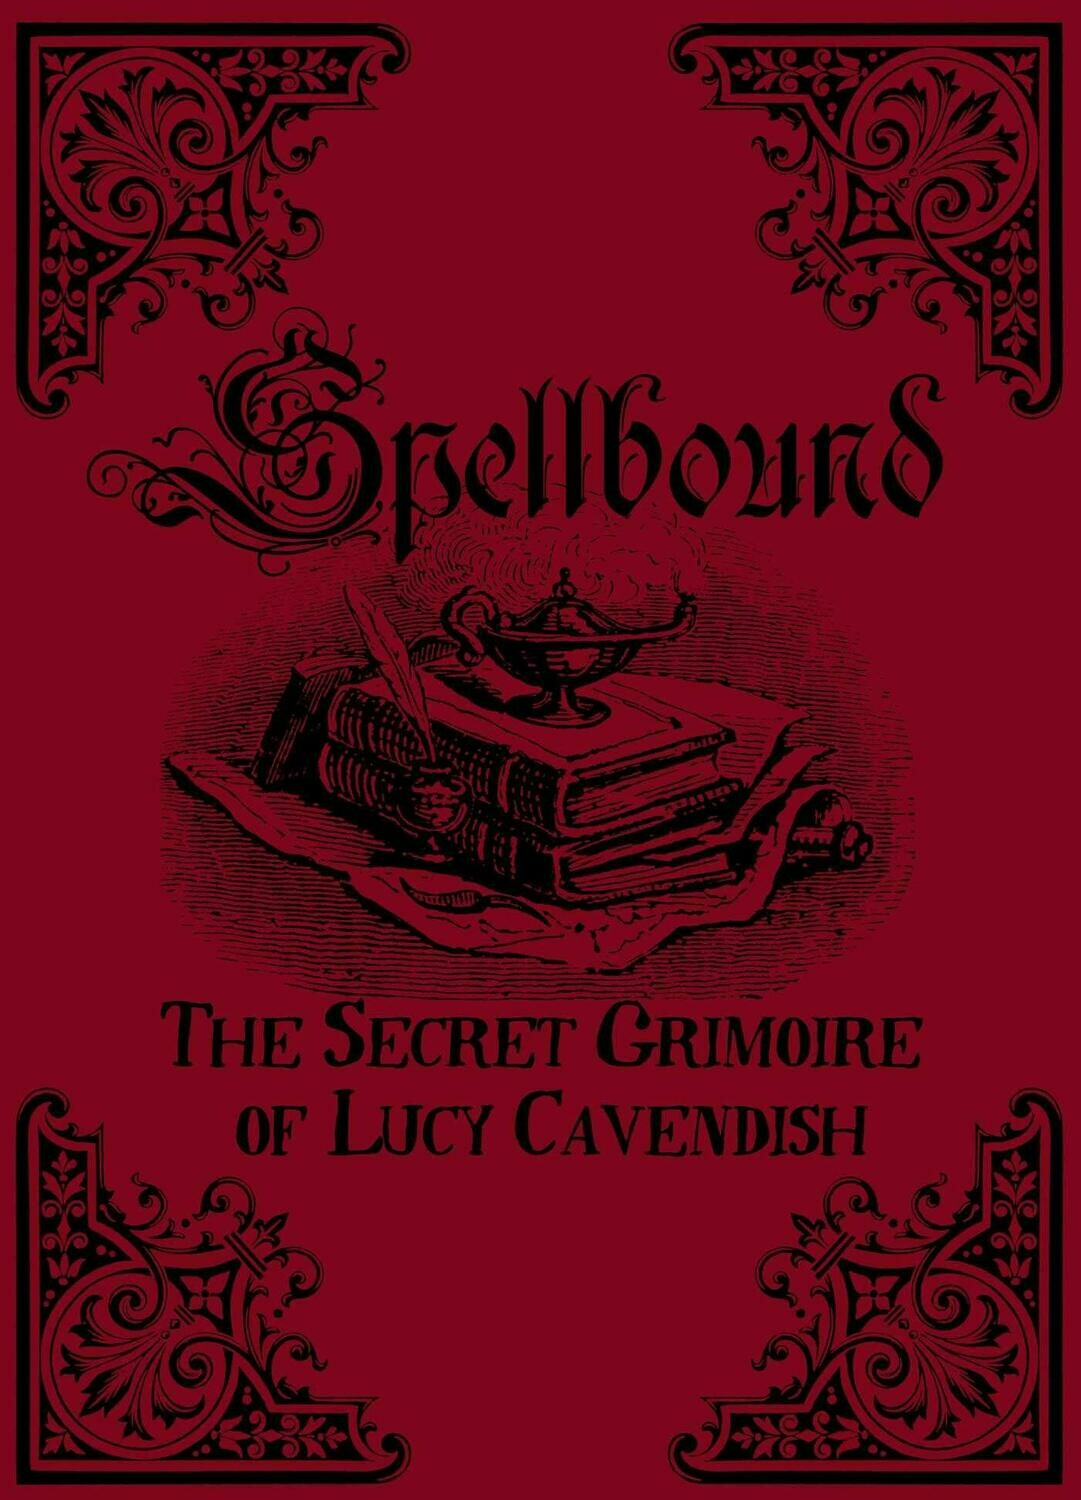 Spellbound by Lucy Cavendish